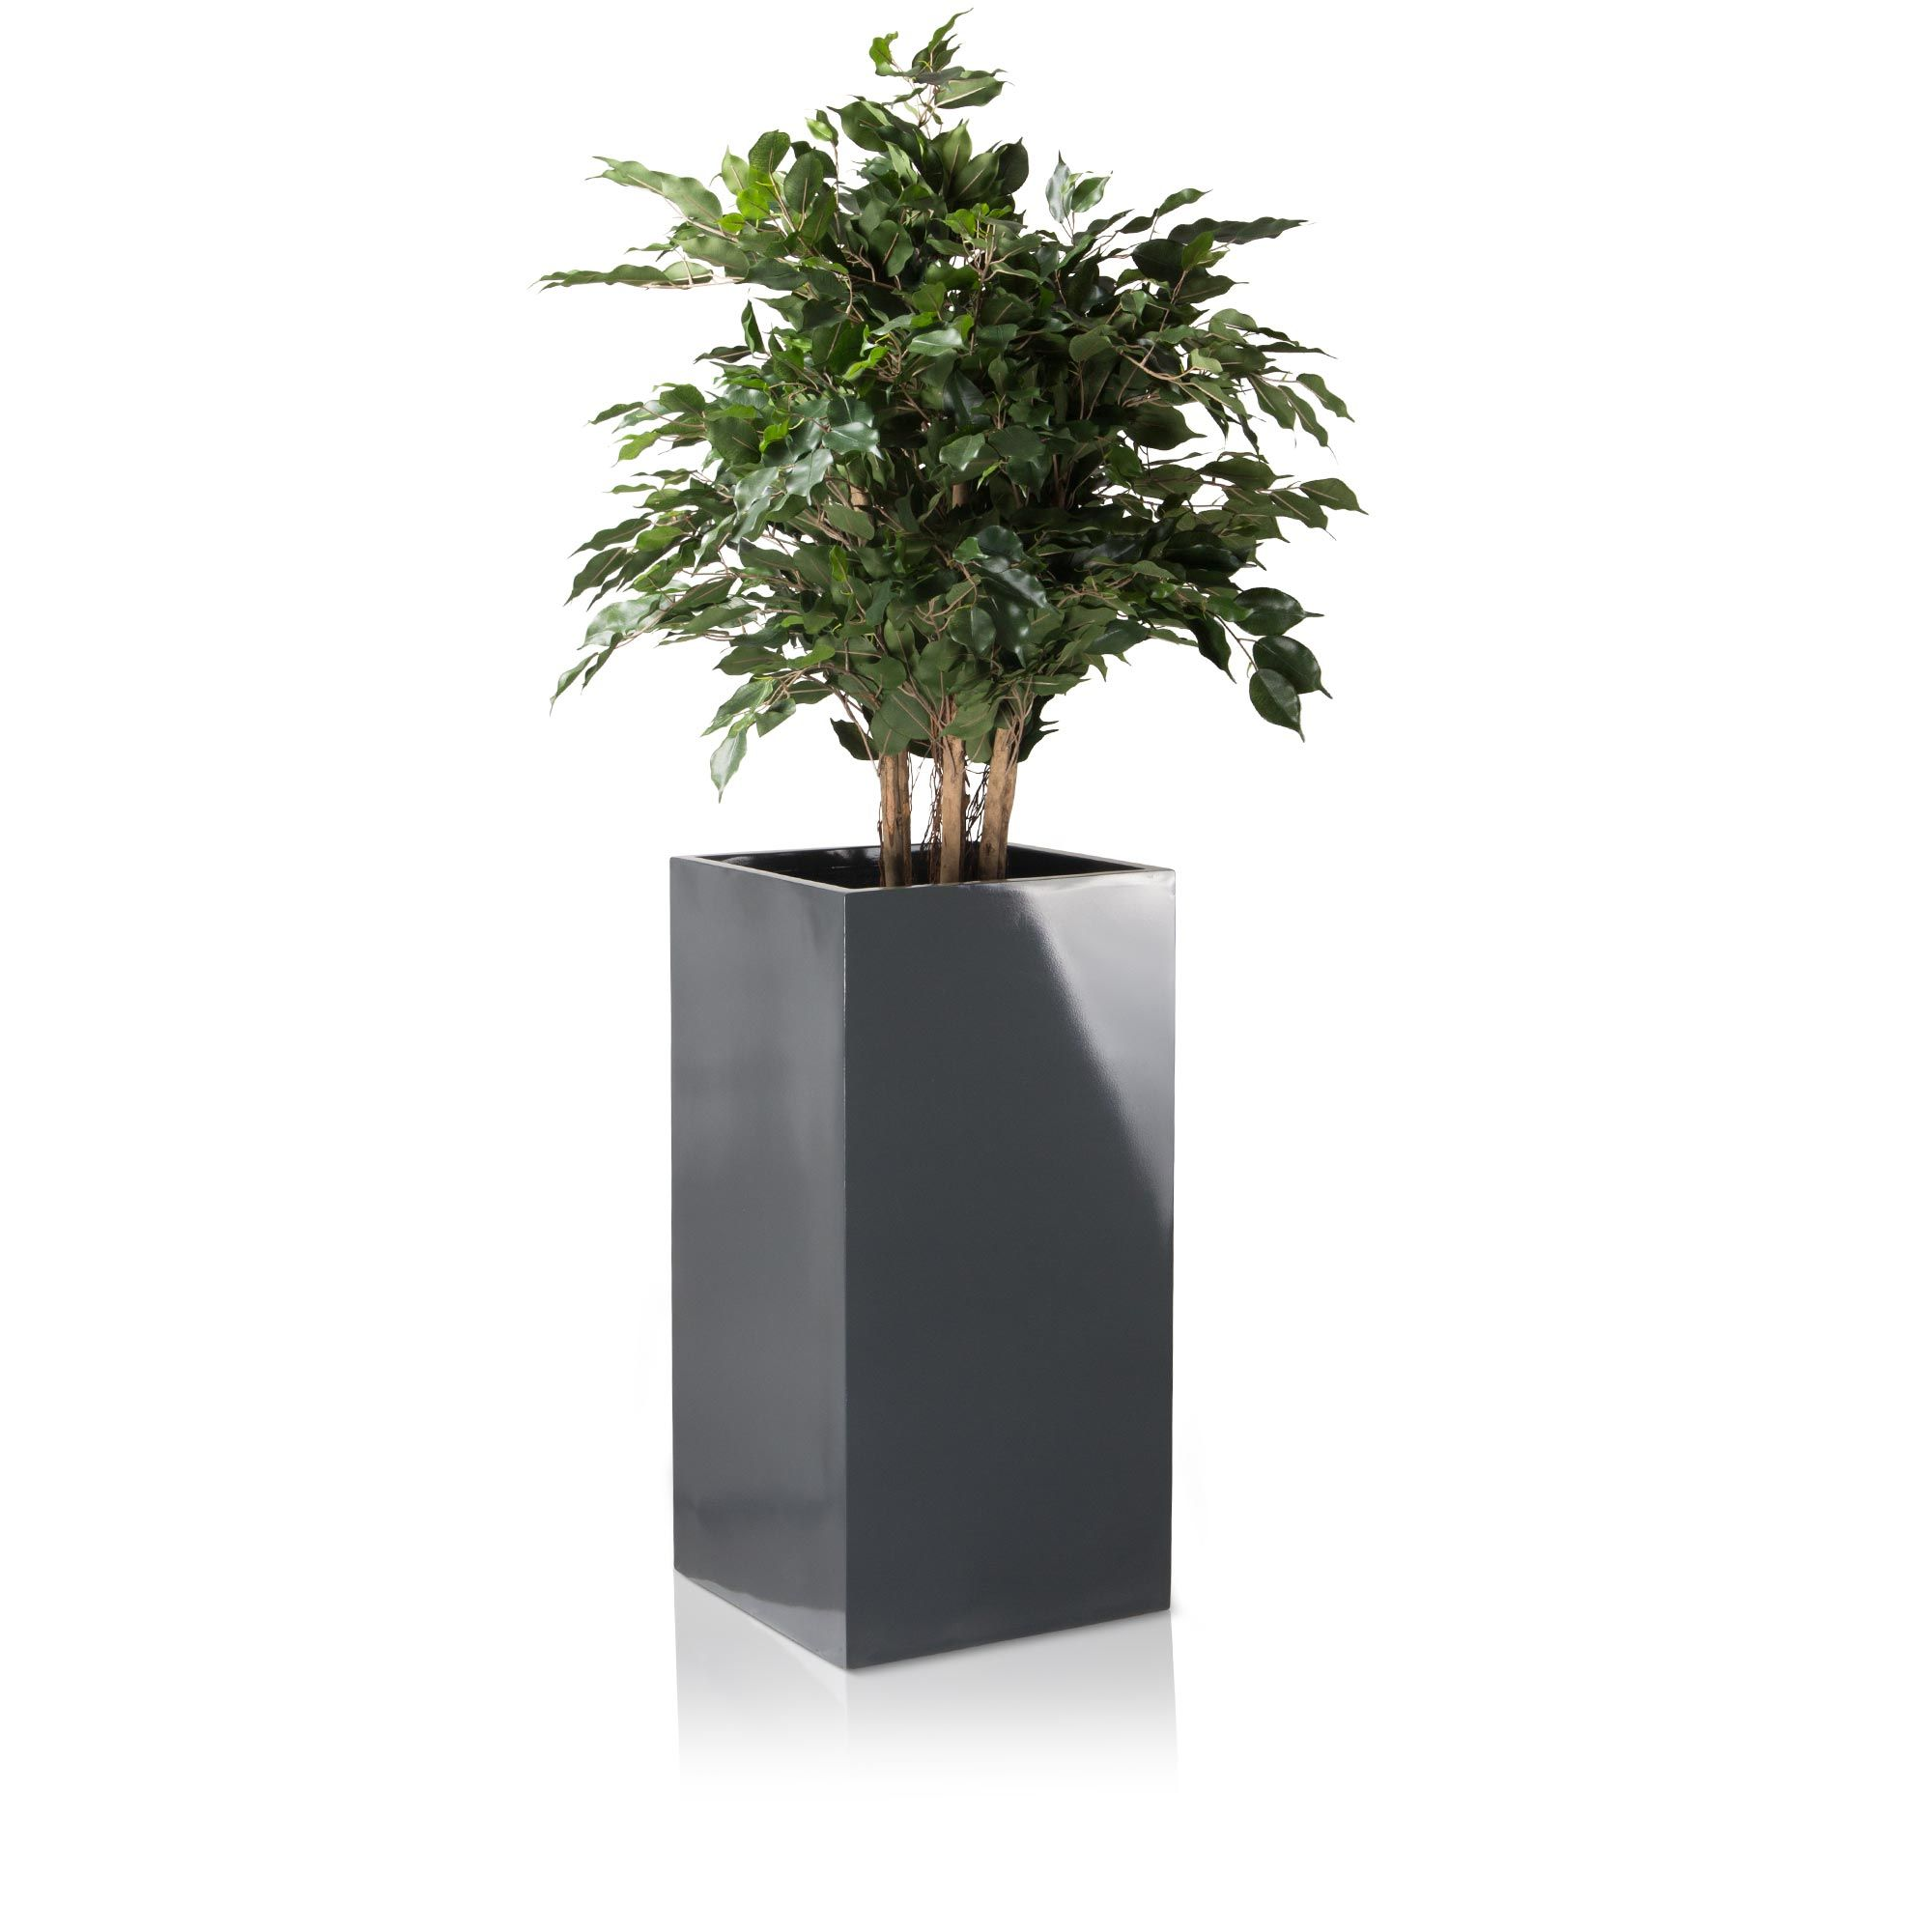 The Torre 80 Planter Is A Shining Fibreglass Plant Pot With A